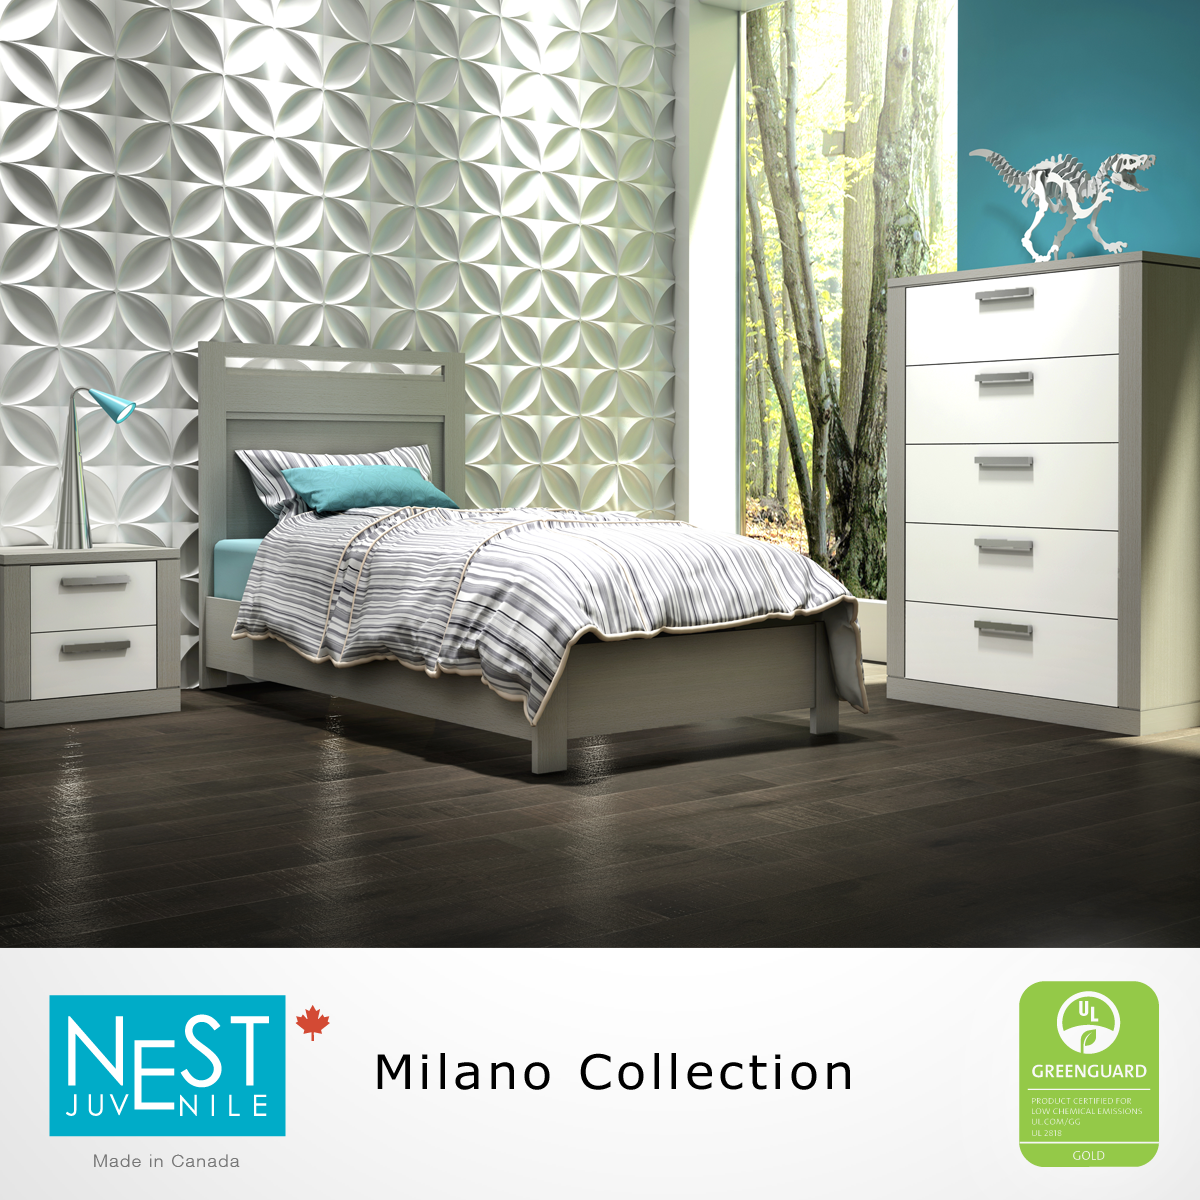 Time to upsize your child's bedroom furniture? The Milano ... - Time to upsize your child's bedroom furniture? The Milano Collection  features both Baby Furniture and